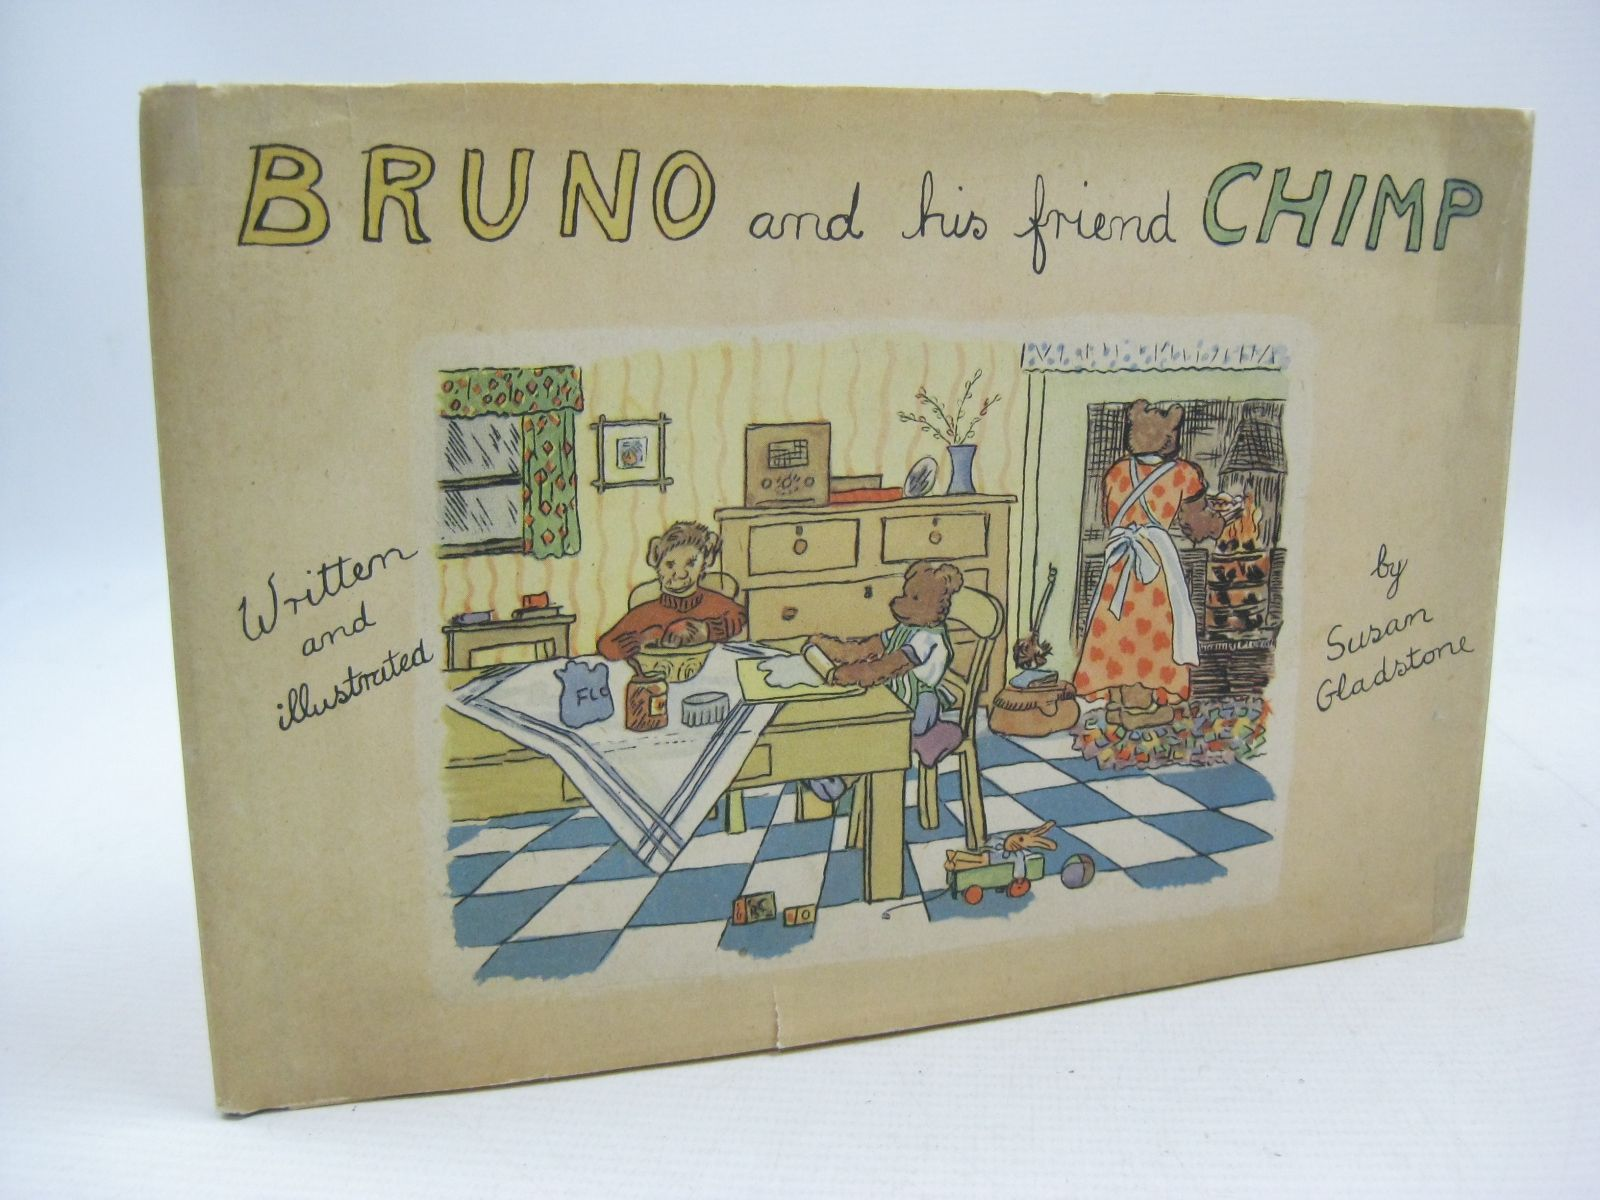 Photo of BRUNO AND HIS FRIEND CHIMP written by Gladstone, Susan illustrated by Gladstone, Susan published by J.M. Dent & Sons Ltd. (STOCK CODE: 1315437)  for sale by Stella & Rose's Books